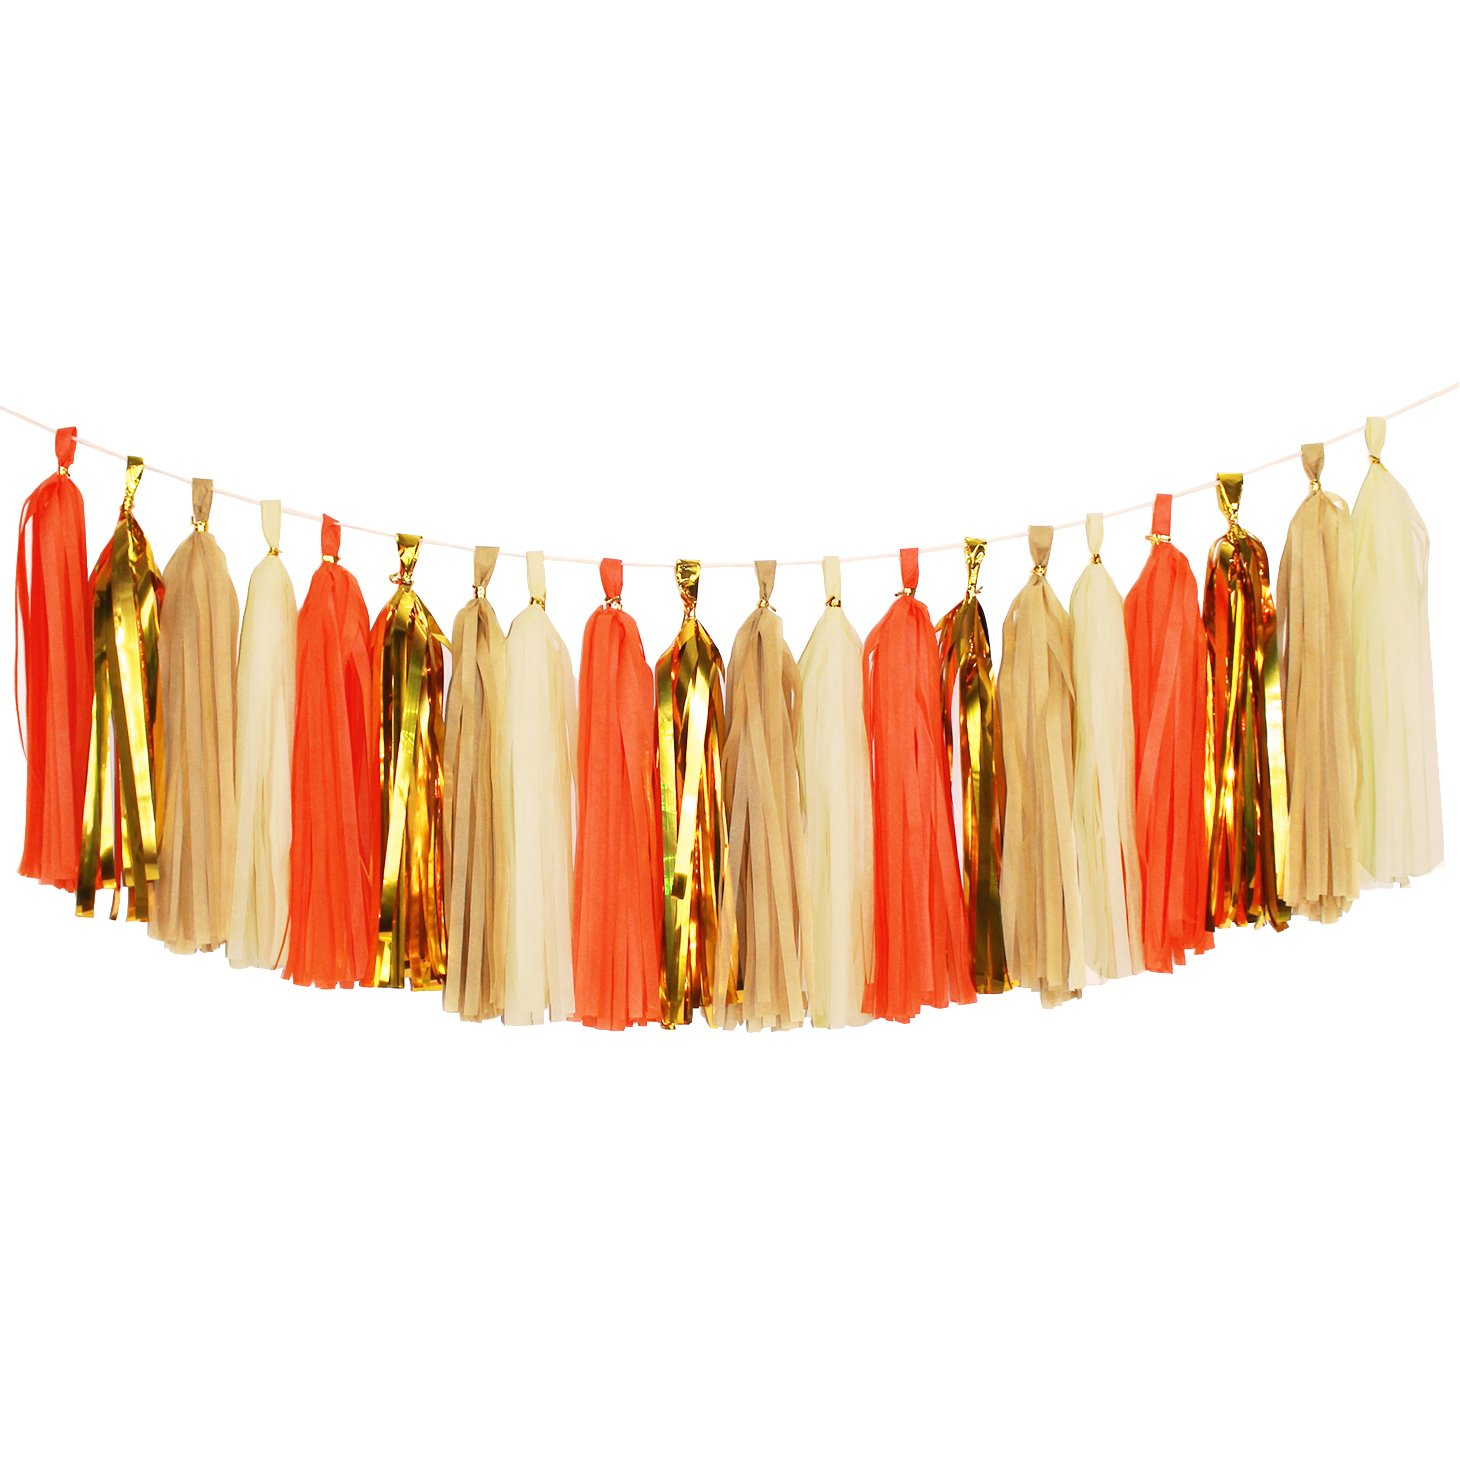 Koker Tassel Garland, Tissue Paper Tassels Banner for Wedding, Baby Shower, First Birthday Party Decorations, 20 pcs DIY Kits (Orange+Metallic Gold+Tan+Ivory)